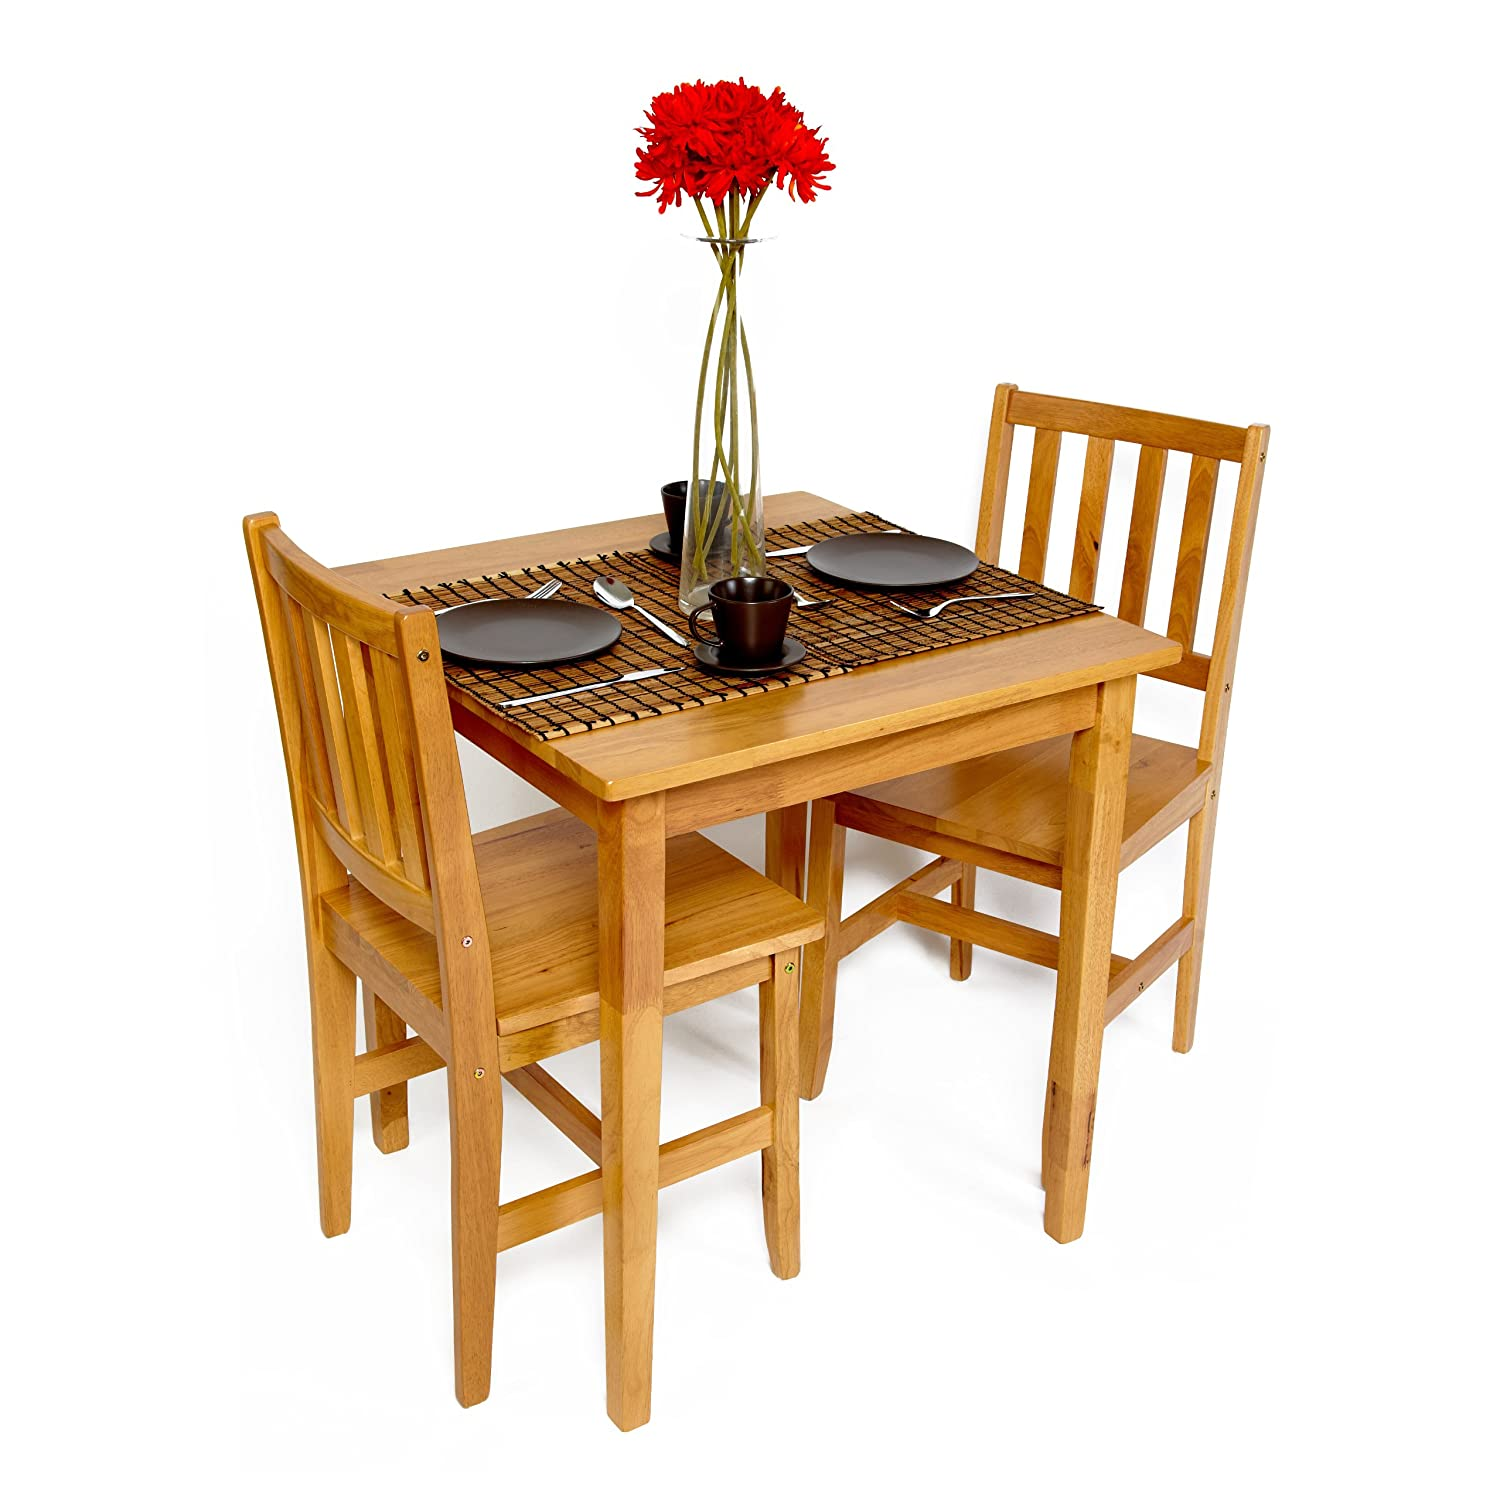 Table and chairs set dining bistro small cafe tables wood for Kitchenette sets furniture